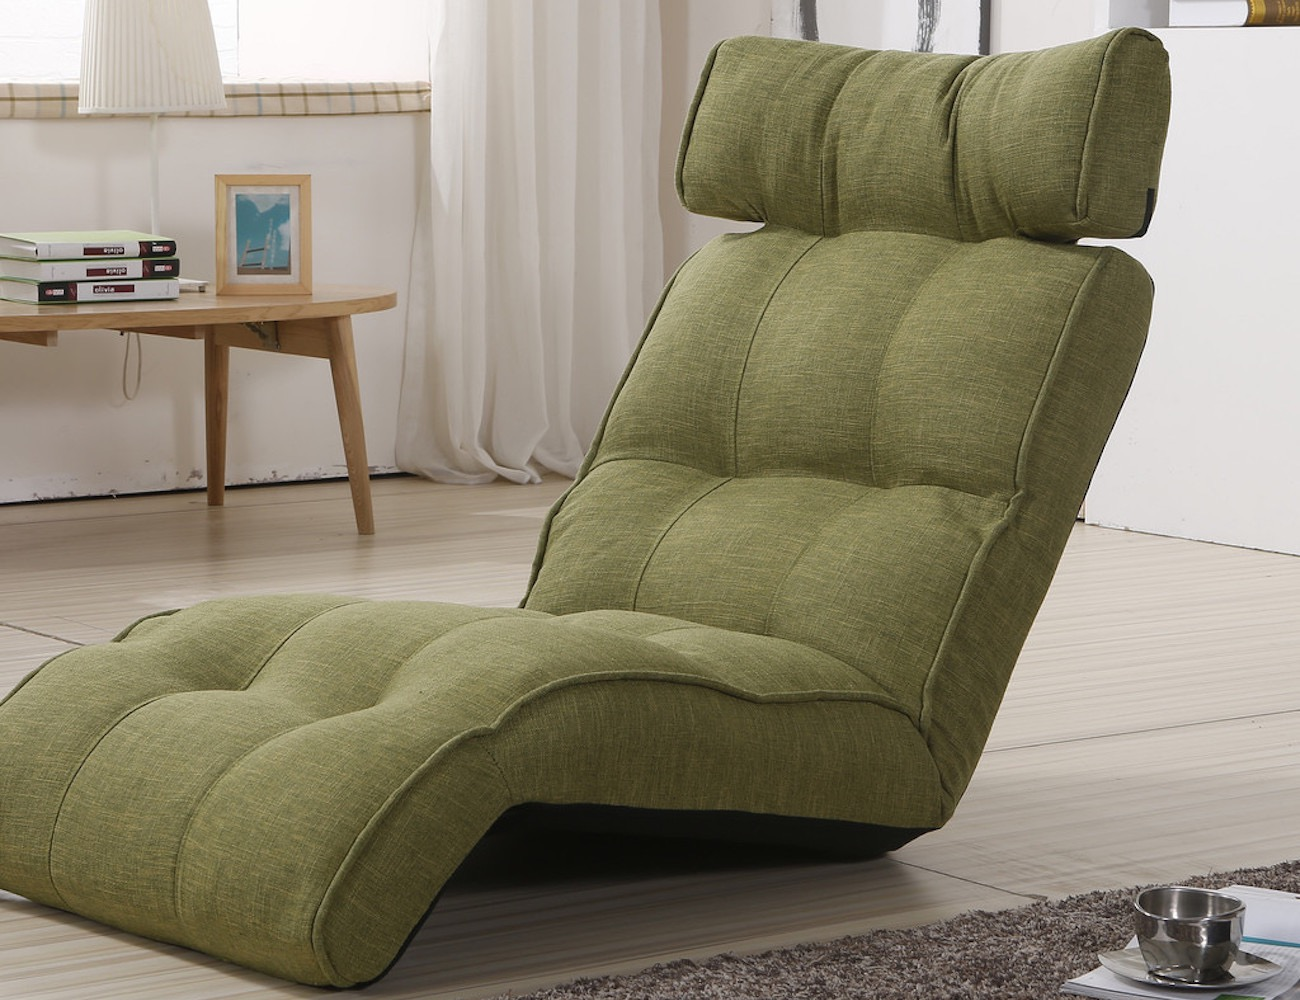 deluxe-sofa-chair-by-cozy-kino-01